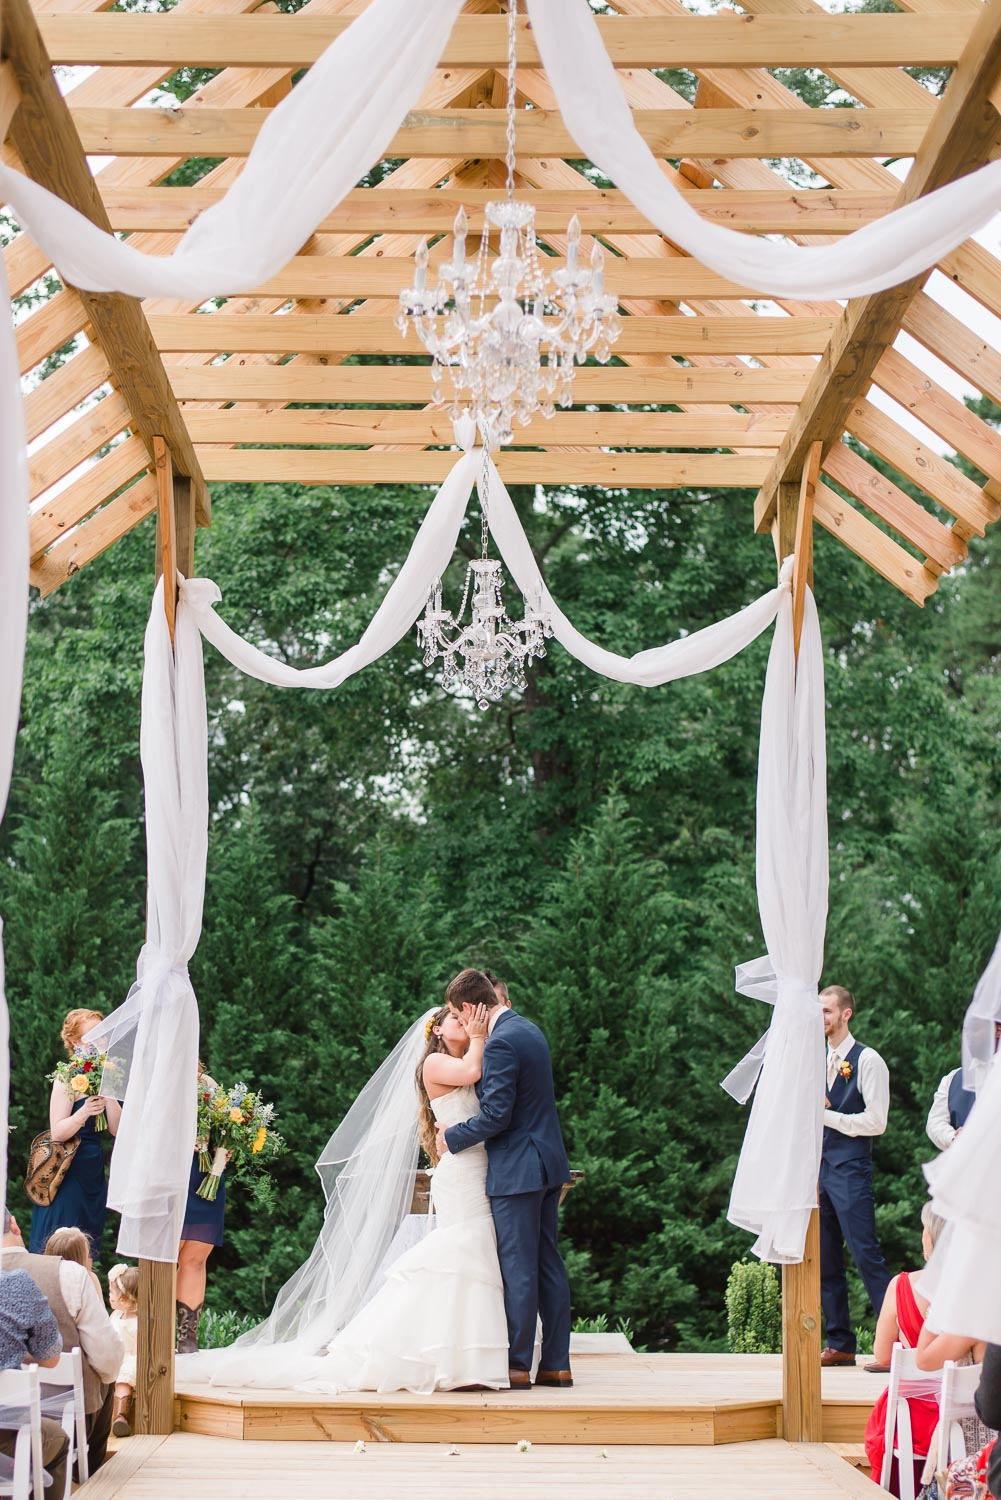 outside wedding ceremony with white drapes and chandeliers